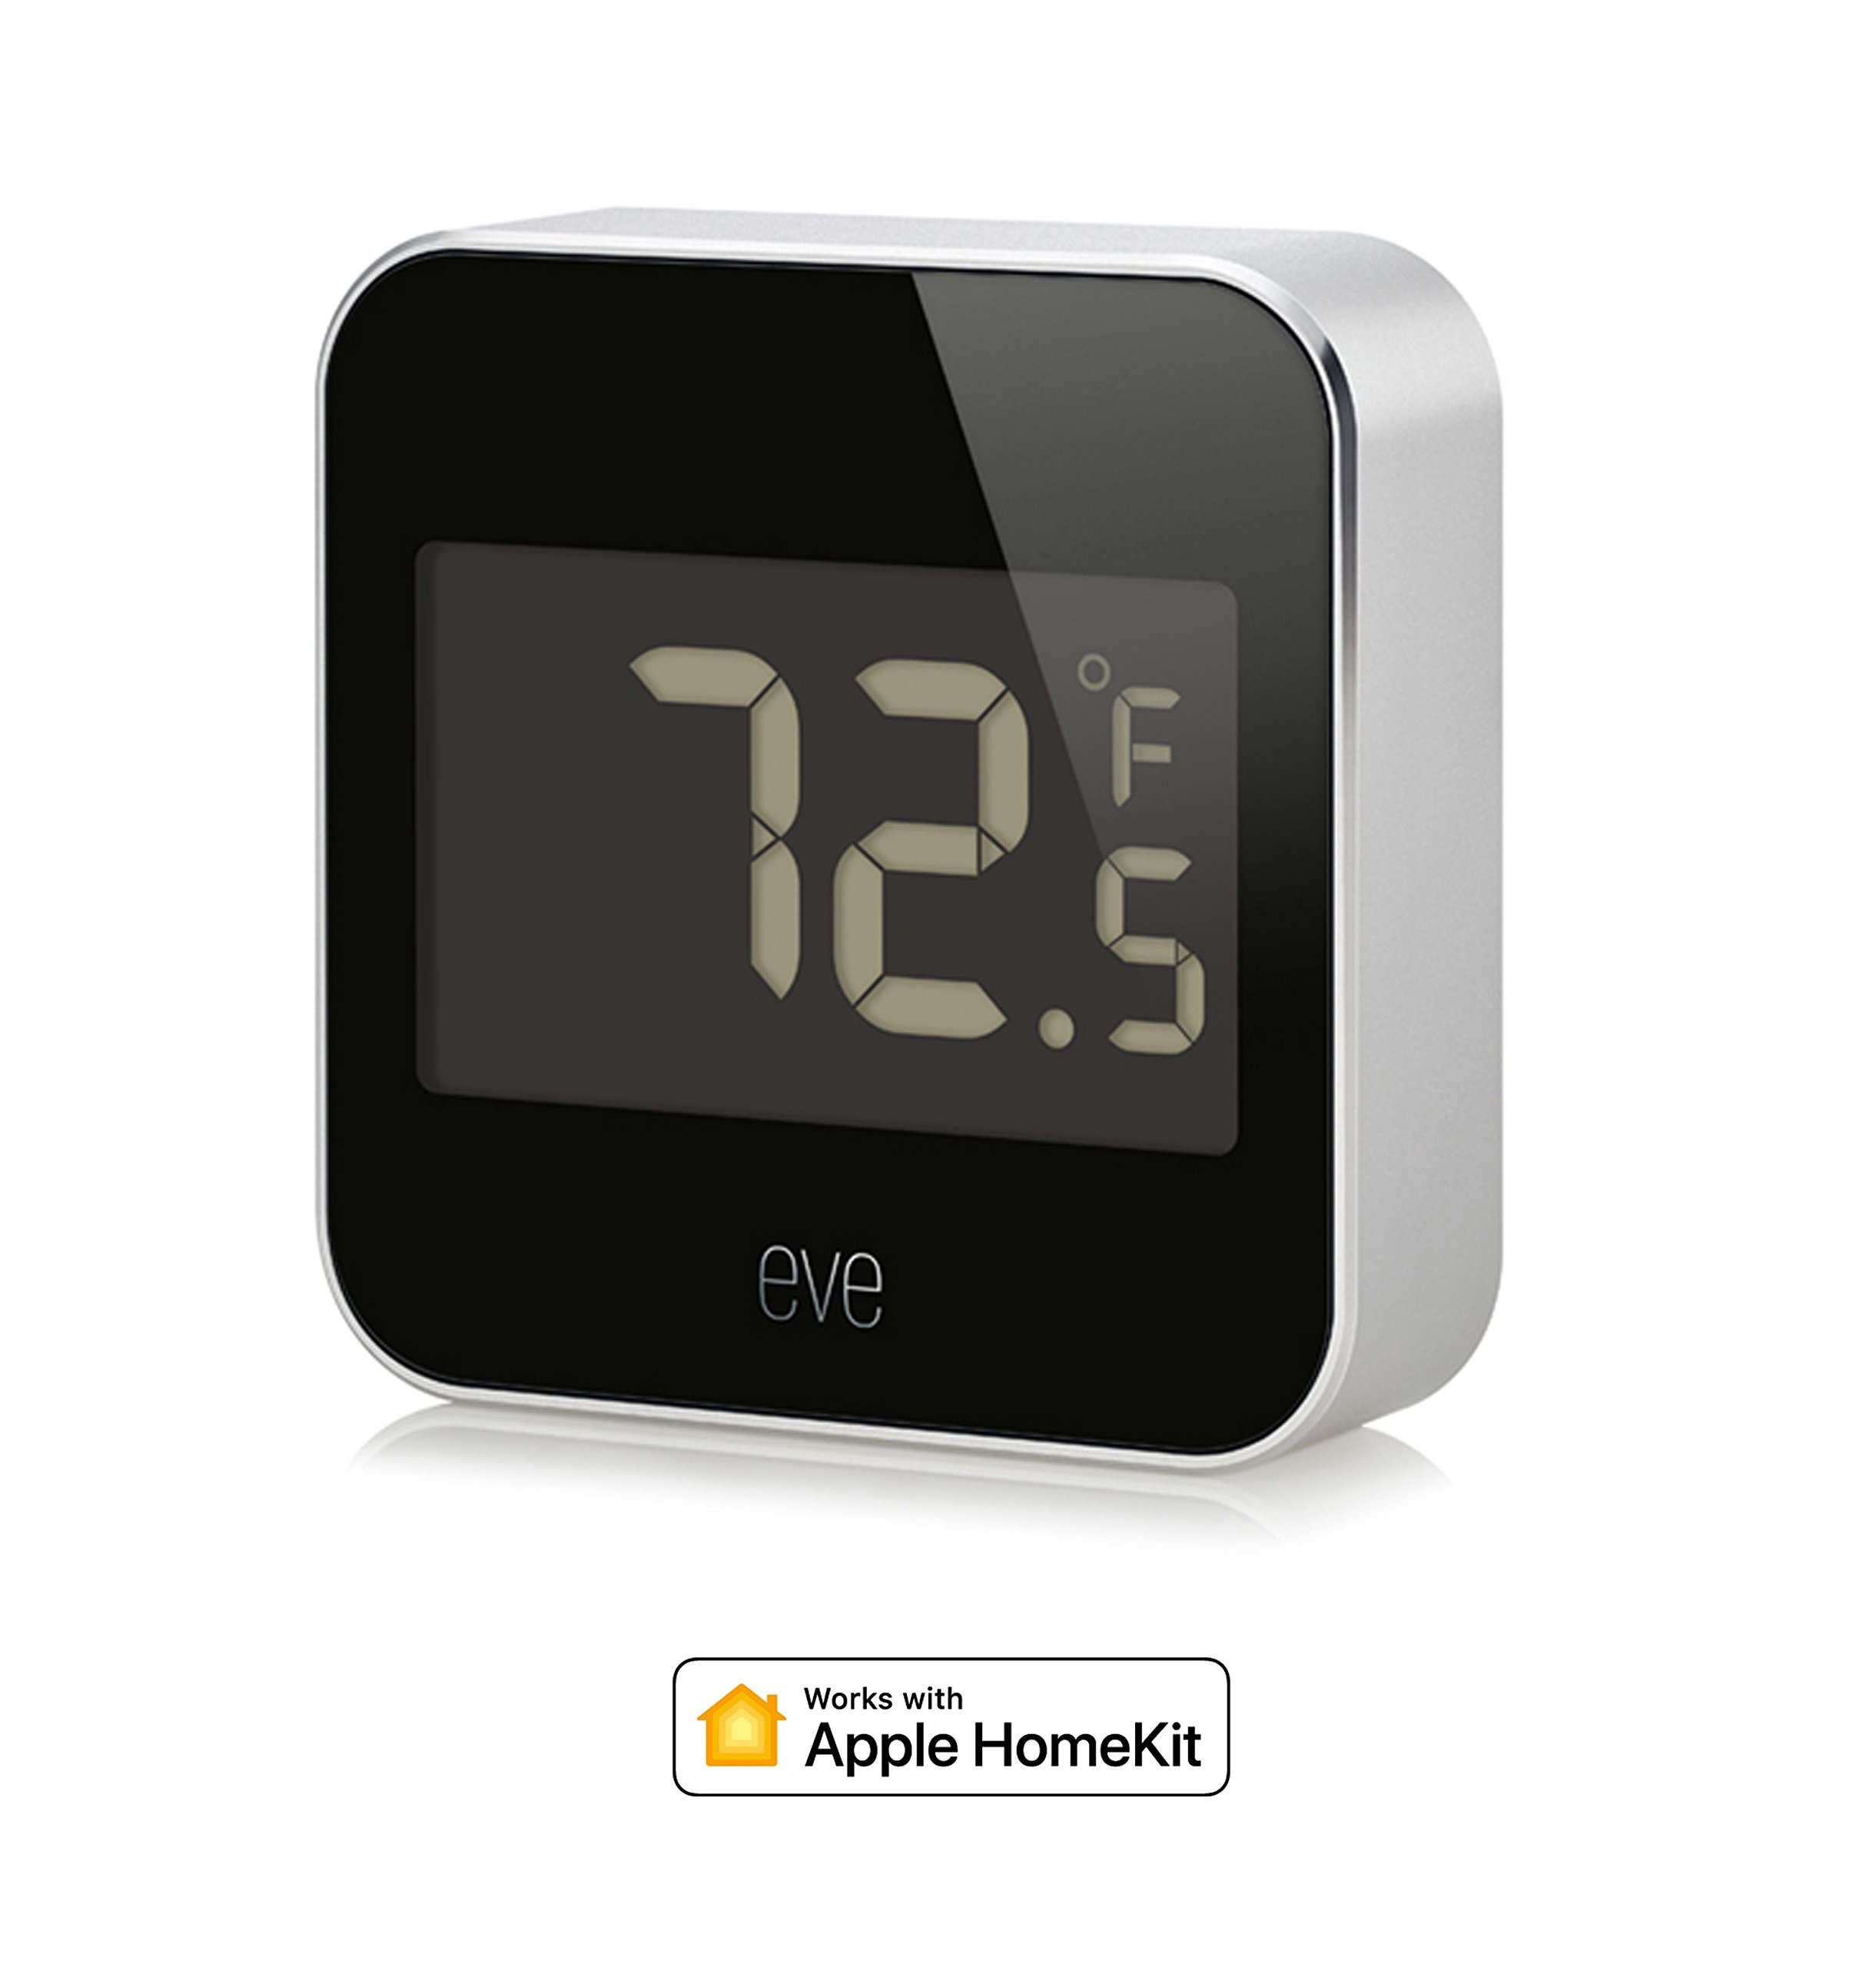 Eve Degree - Connected Weather Station with Apple HomeKit Technology for Tracking Temperature, Humidity & air Pressure, IPX3 Water Resistance, LCD Display, Bluetooth Low Energy